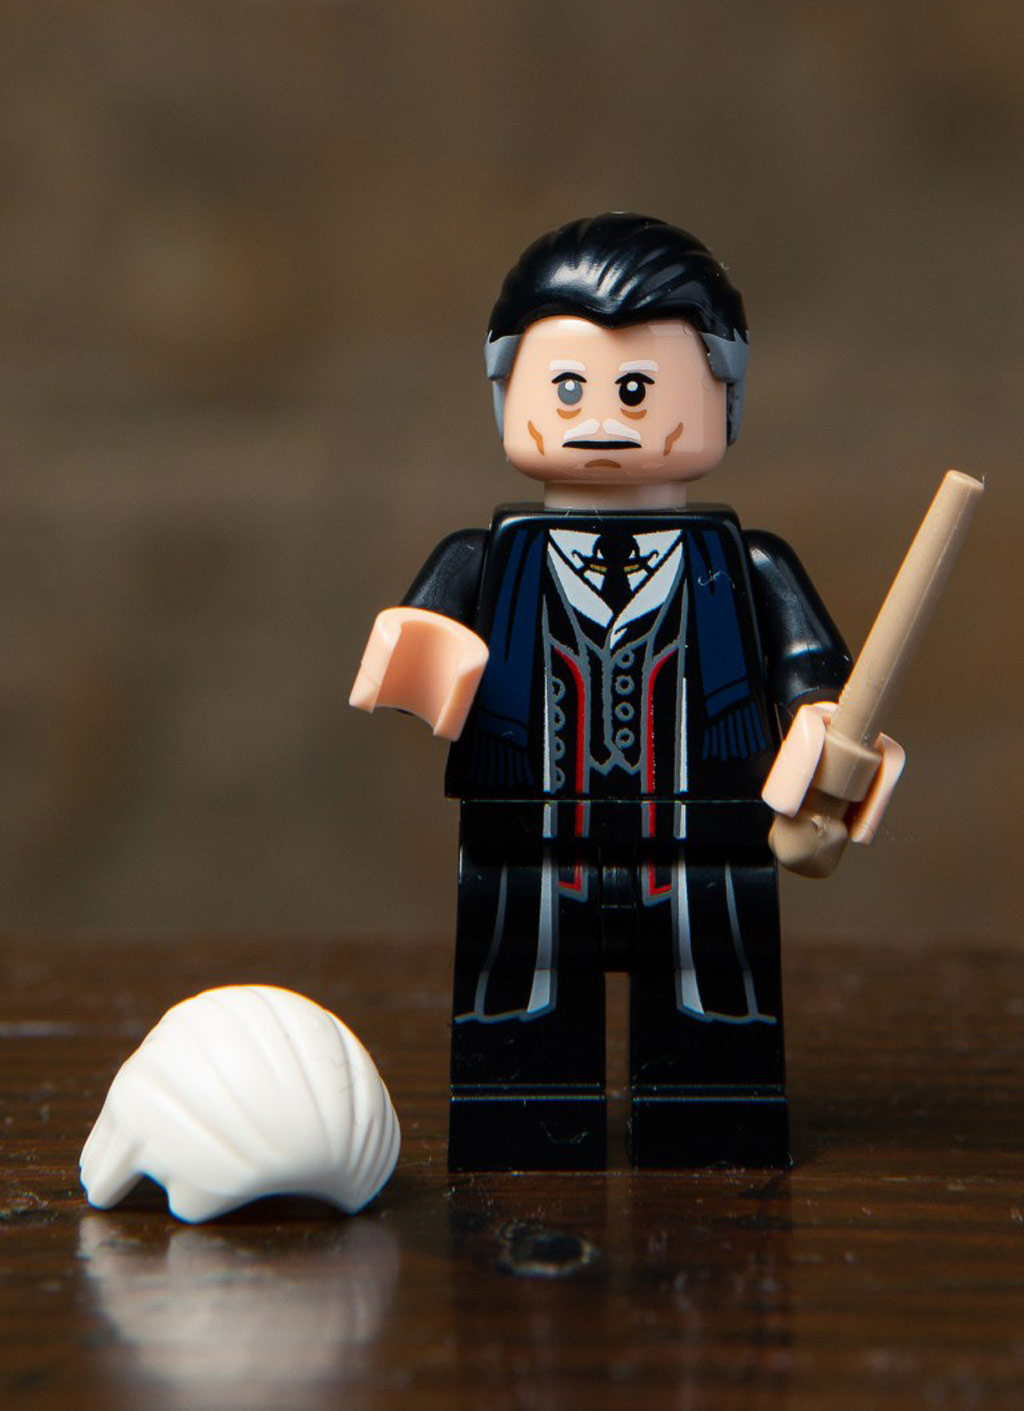 lego-wizarding-world-minifiguren-sammelserie-71022-percival-graves-2018-fantastic-beasts-harry-potter zusammengebaut.com